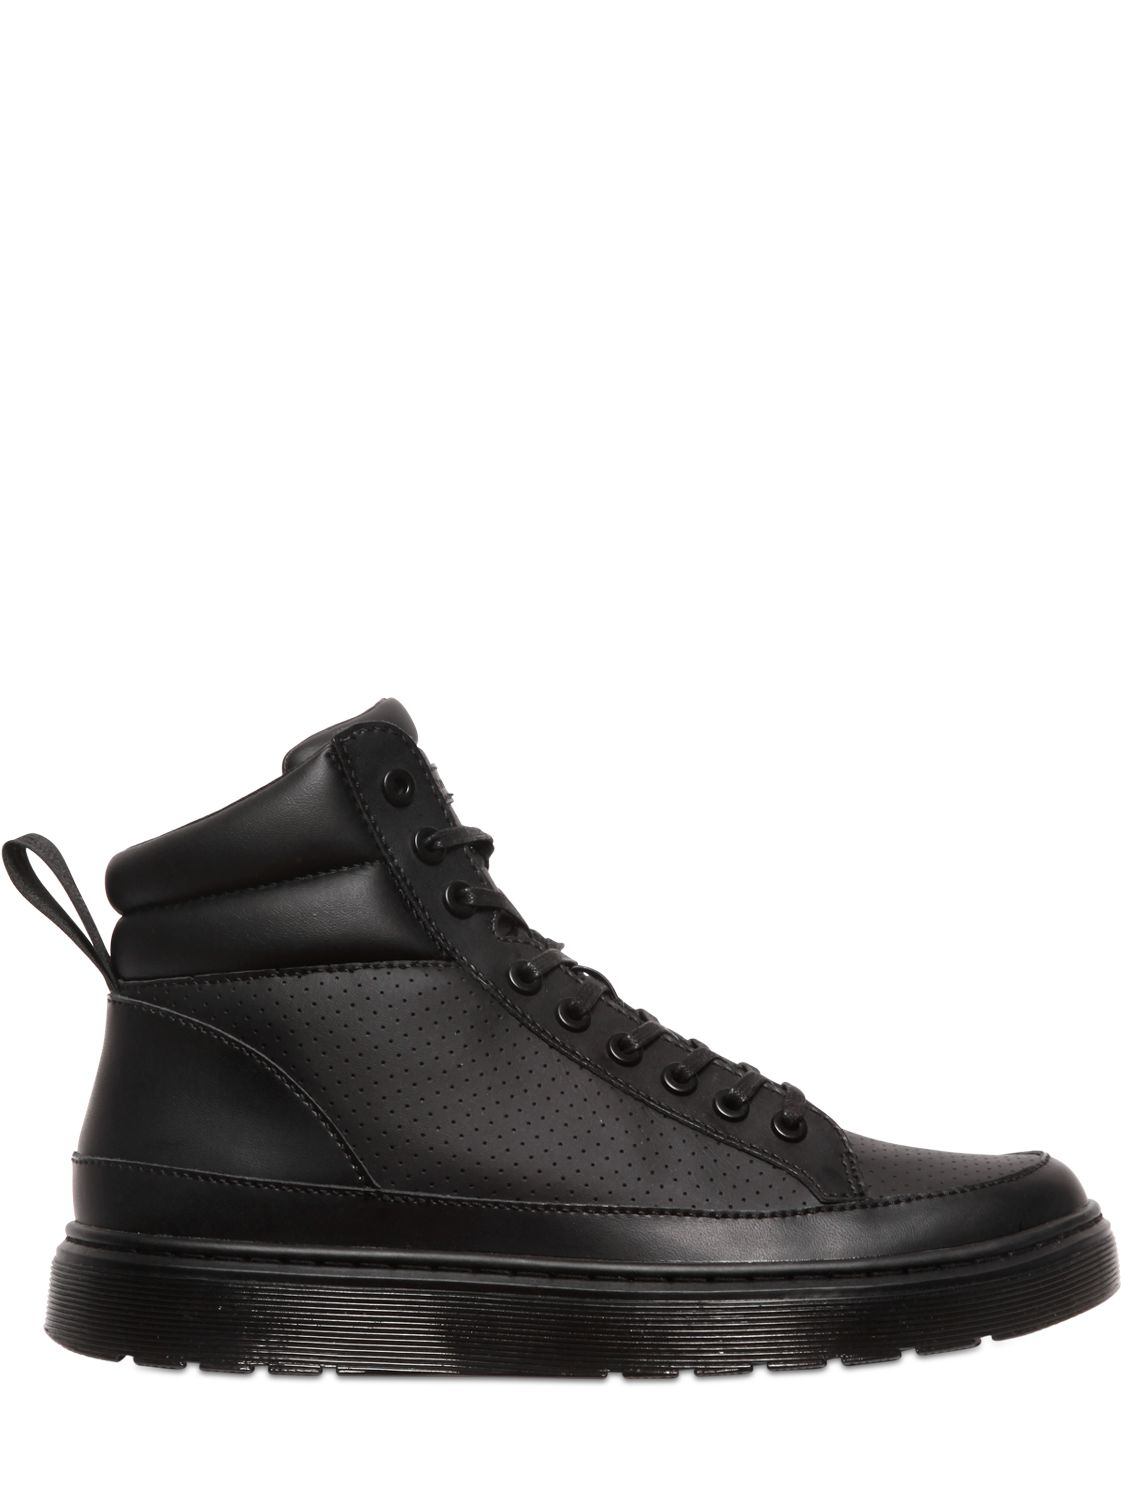 Dr. Martens Black Leather High-Top Sneakers UVlPSaqhx